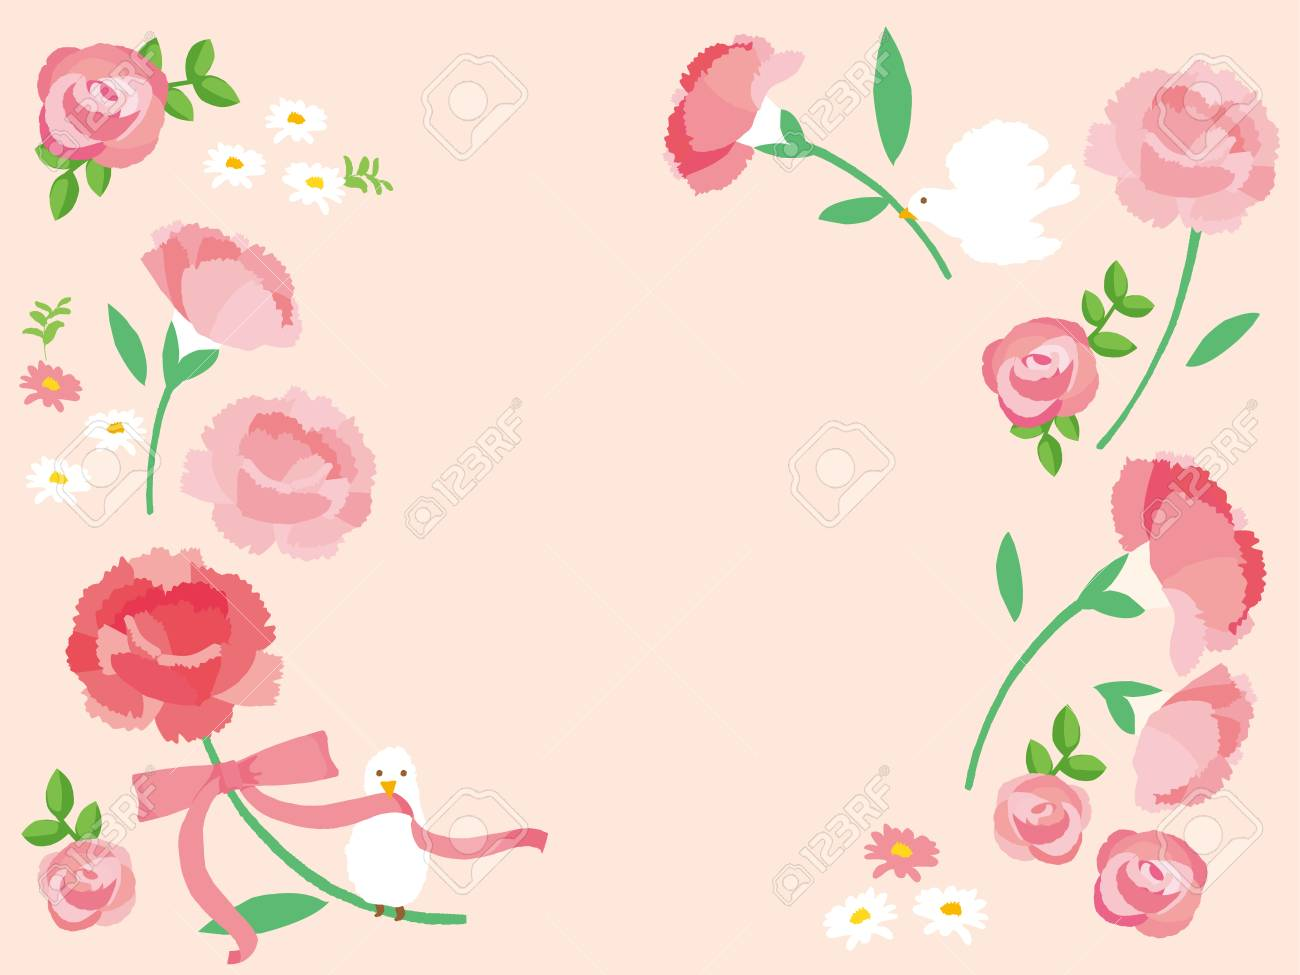 Mother's Day illustration - 102636111